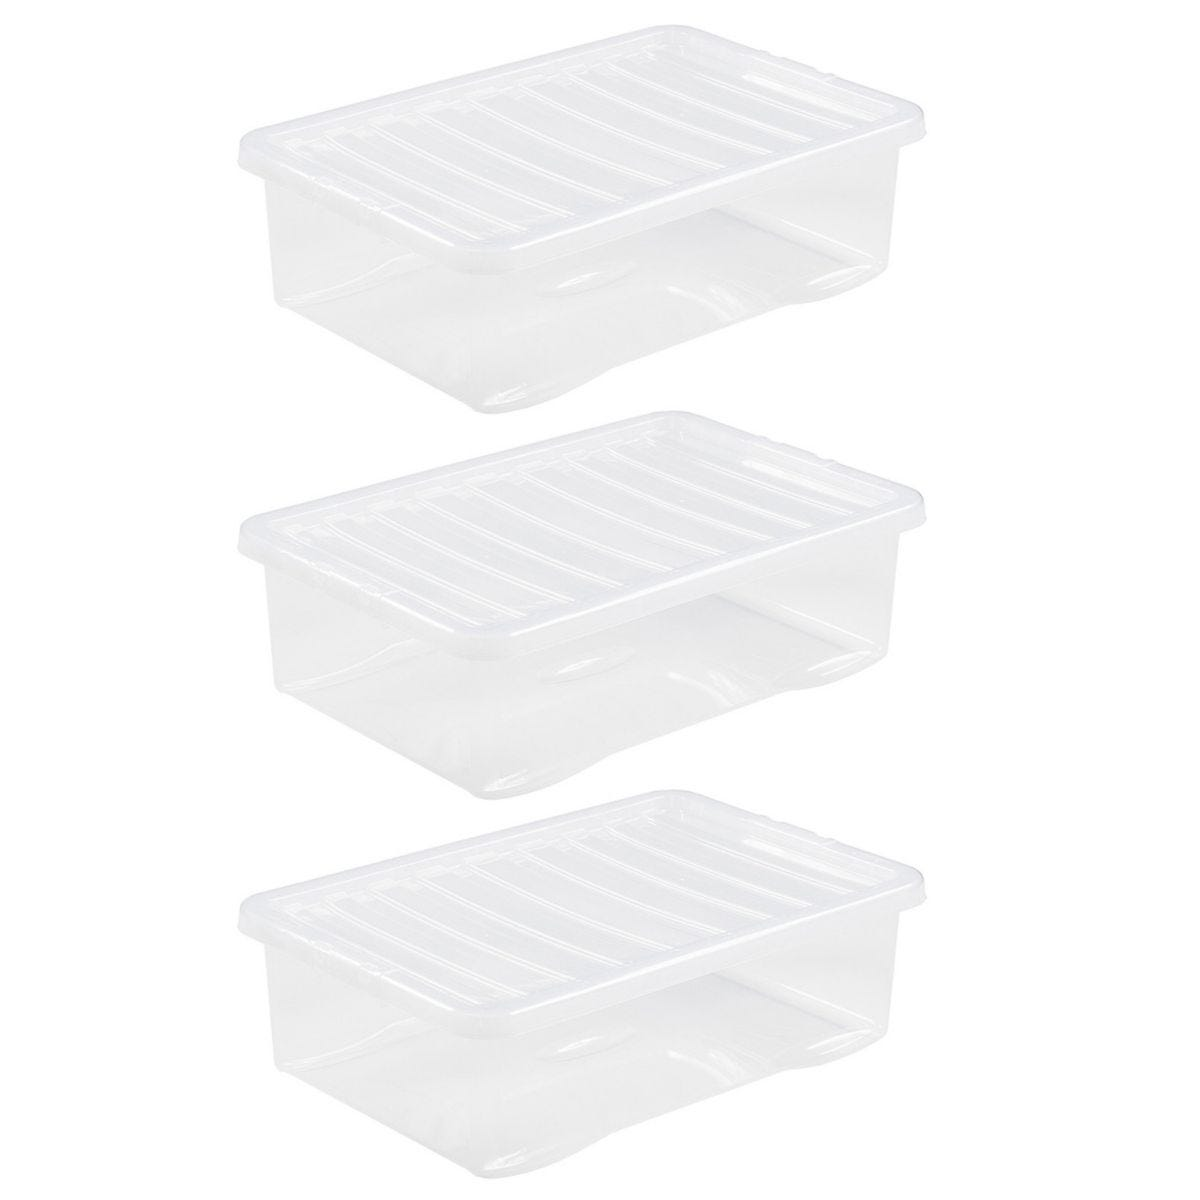 Wham Crystal Clear Under Bed Storage Box with Lid 32L - Set of 3